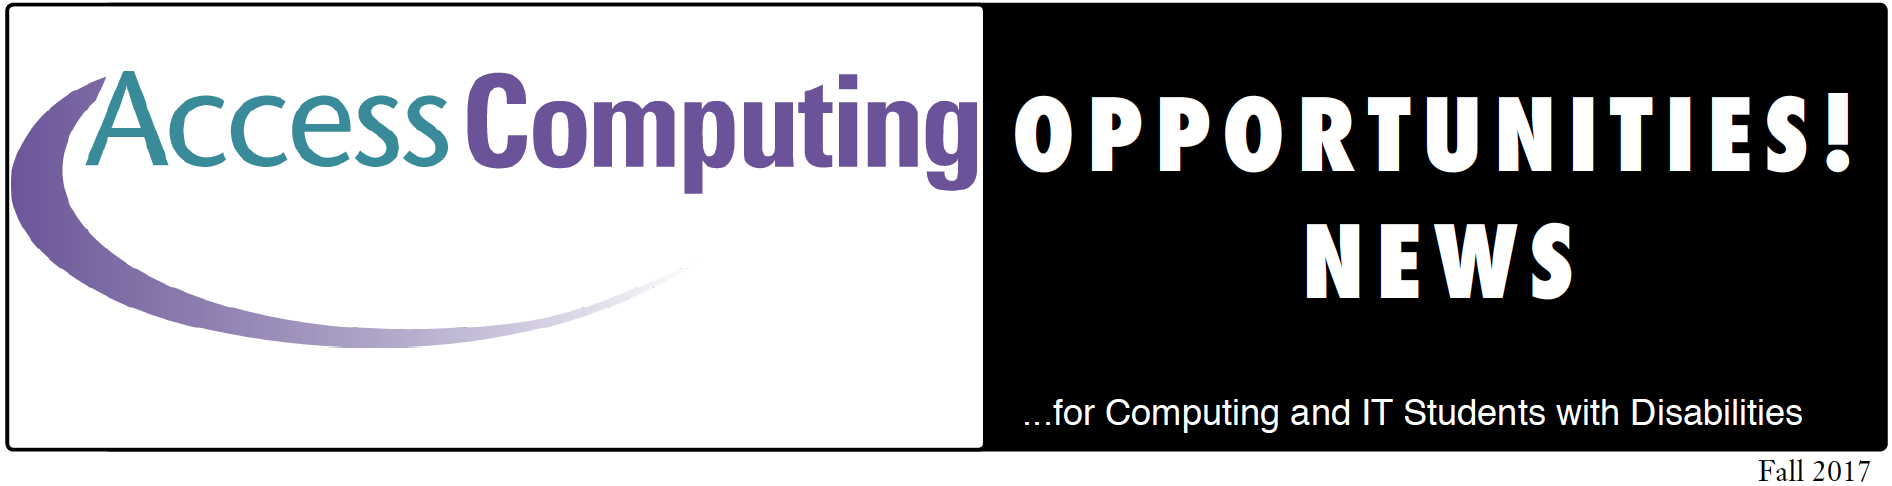 Opportunities! AccessComputing Fall 2017 Header.